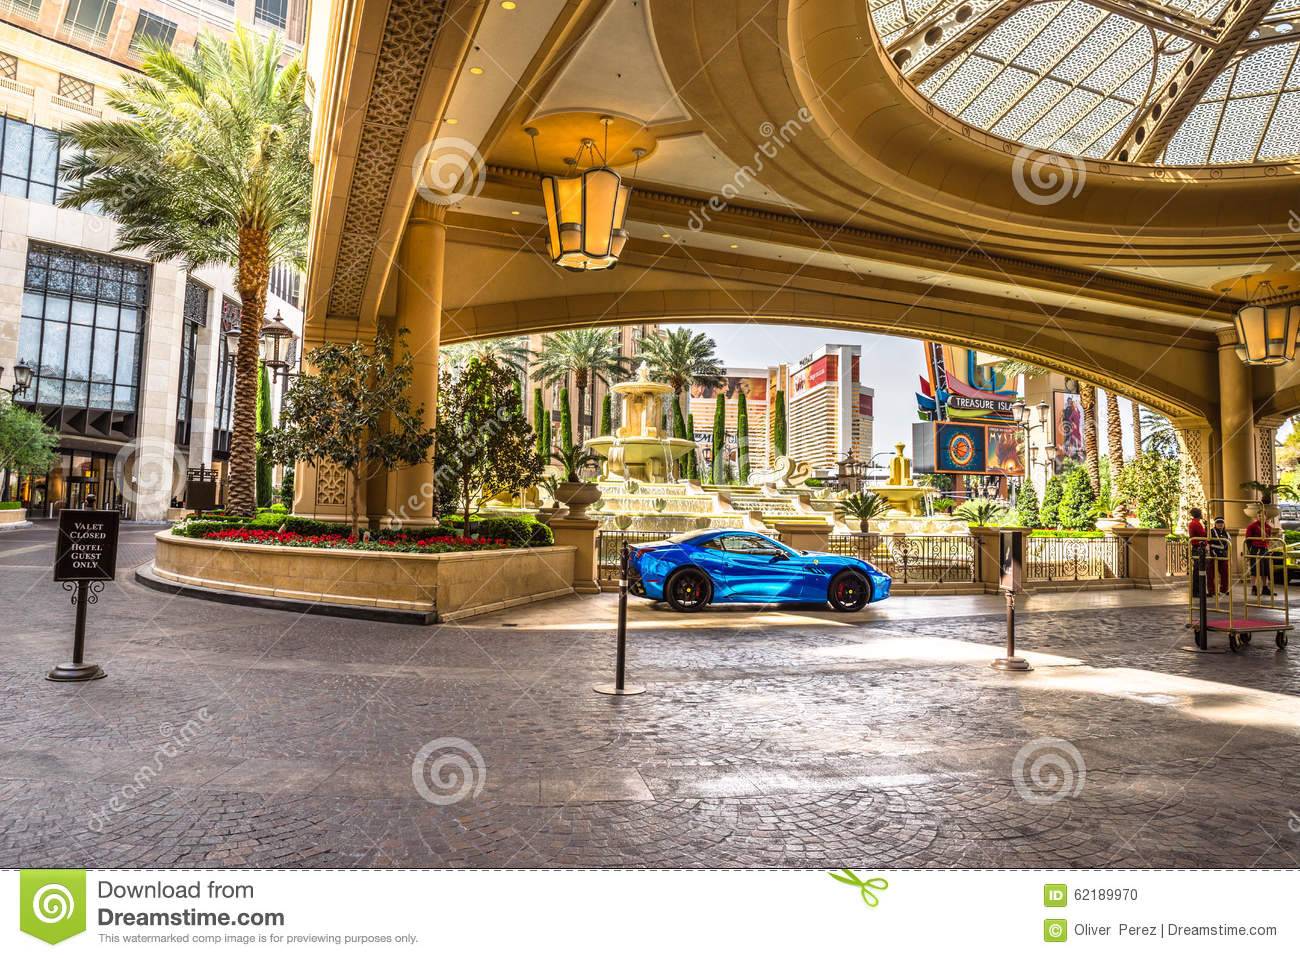 Casino valet parking america casino guide